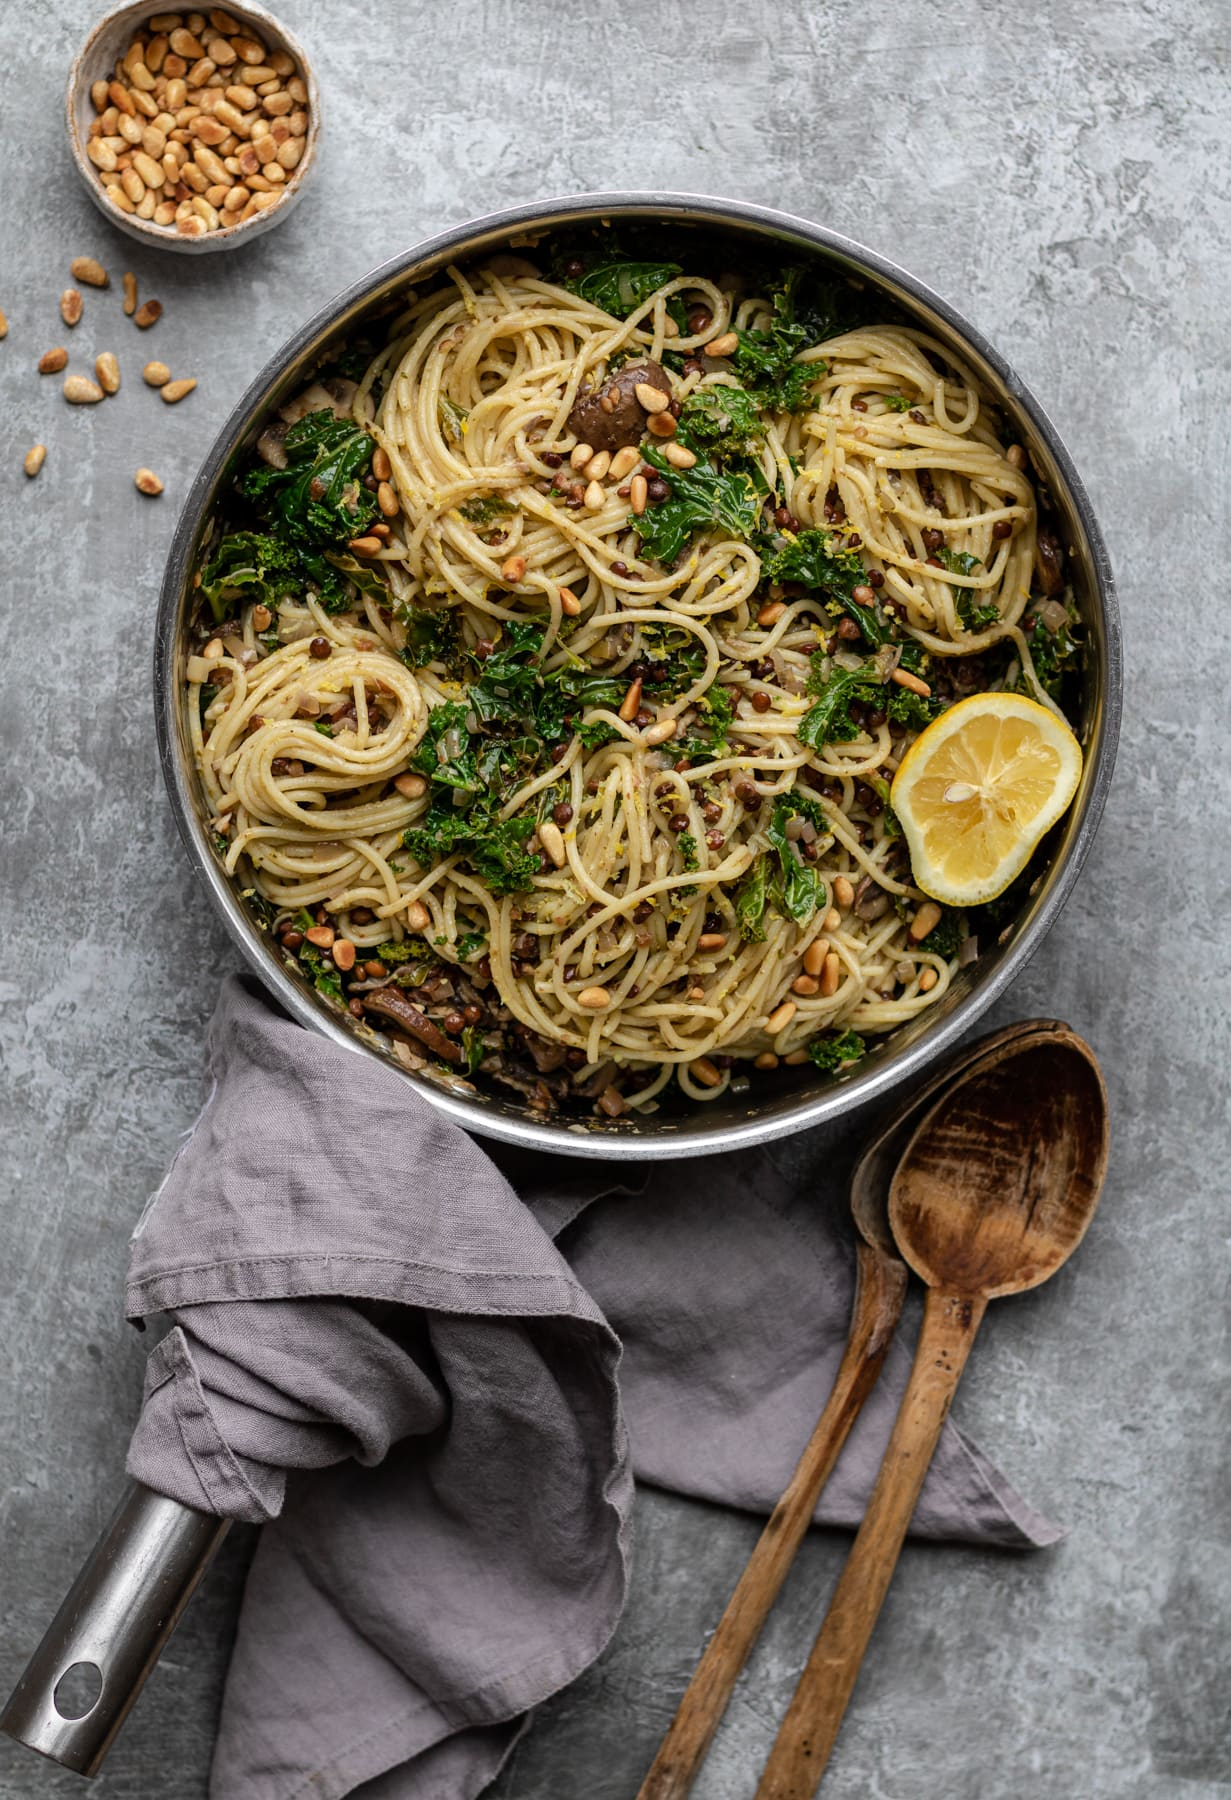 spaghetti with mushrooms in pan sprinkled with pine nuts